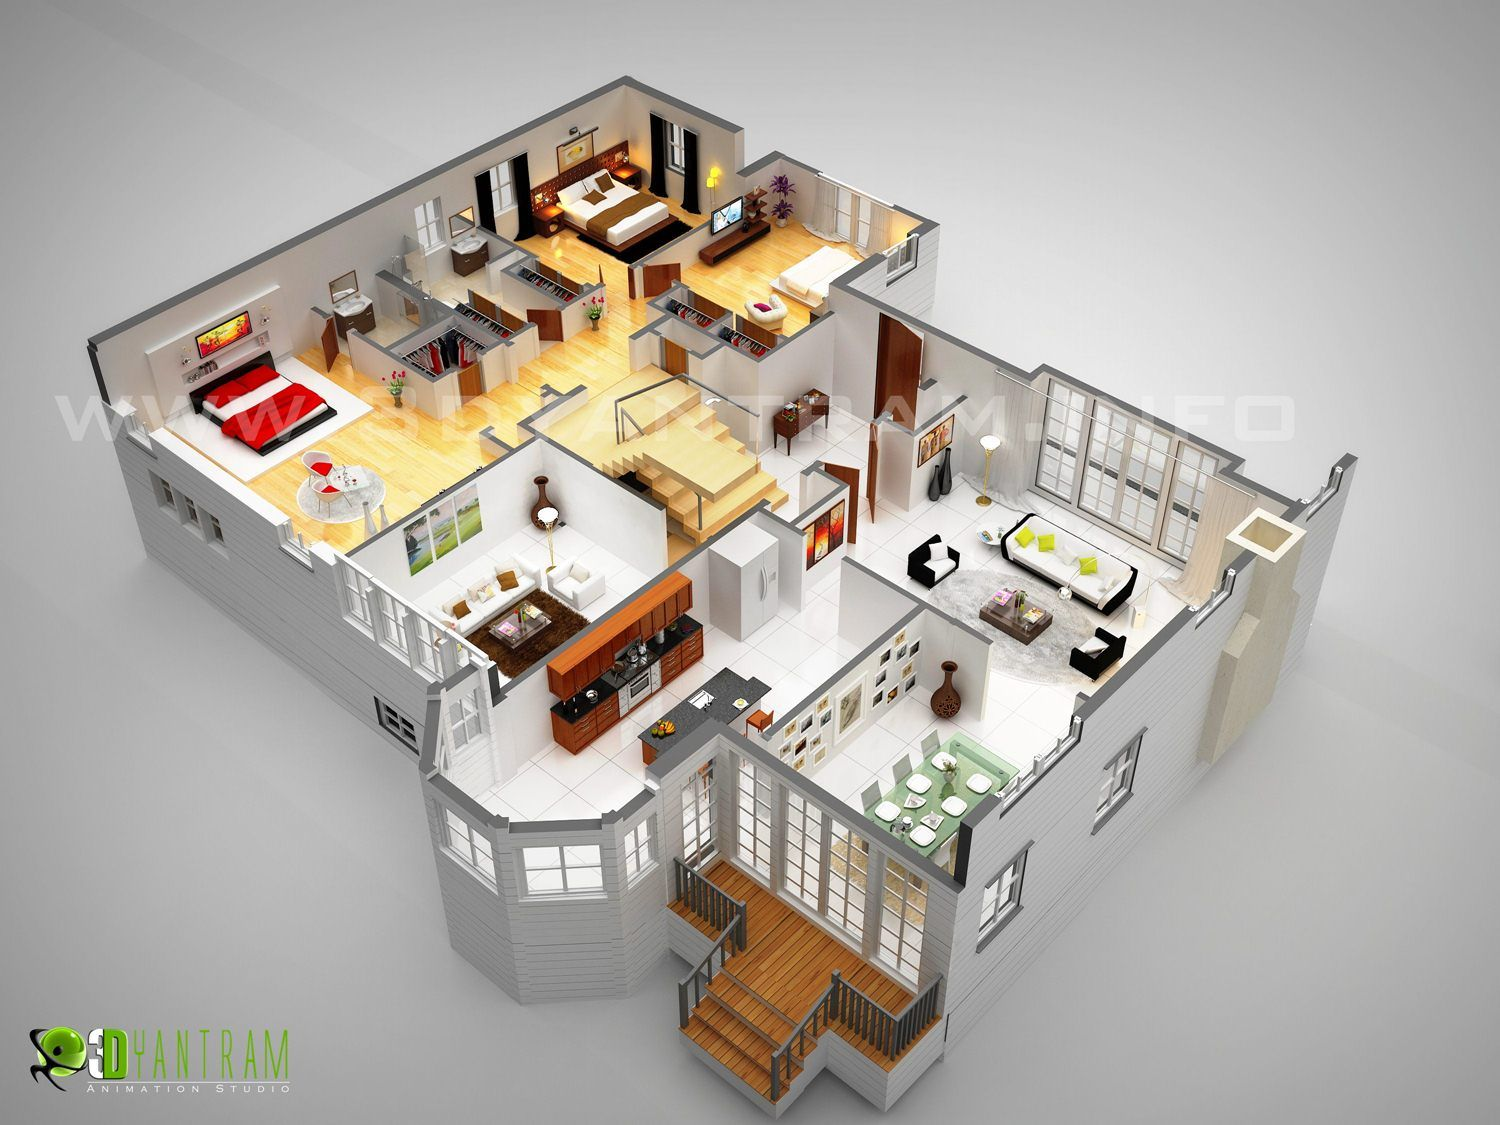 Yantram 3d Home Floor Plan Design Delhi India House Floor Plans Floor Plan Design 3d House Plans